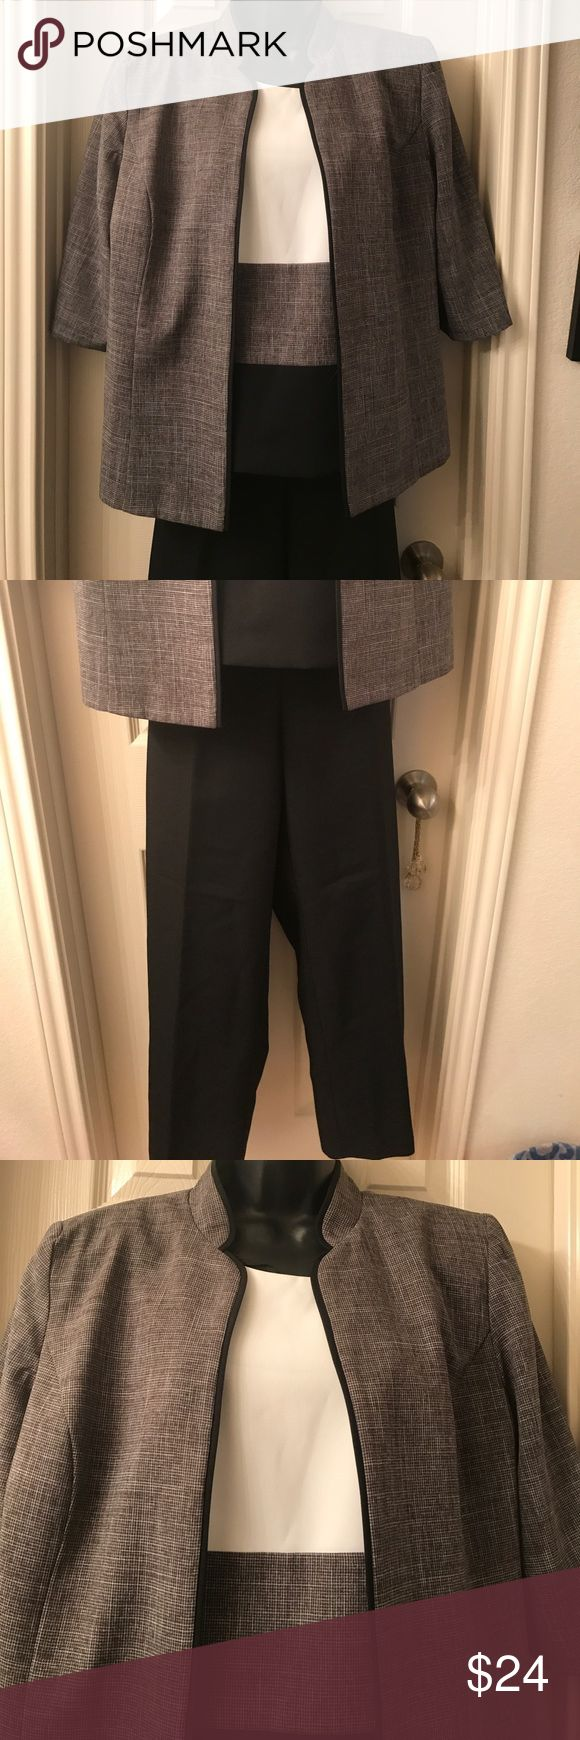 Nice 3 Piece Dressy Pant Suit Worn only once very nice top has side zipper pants have a zipper with elastic on the back part, 100% polyester Perceptions New York Other